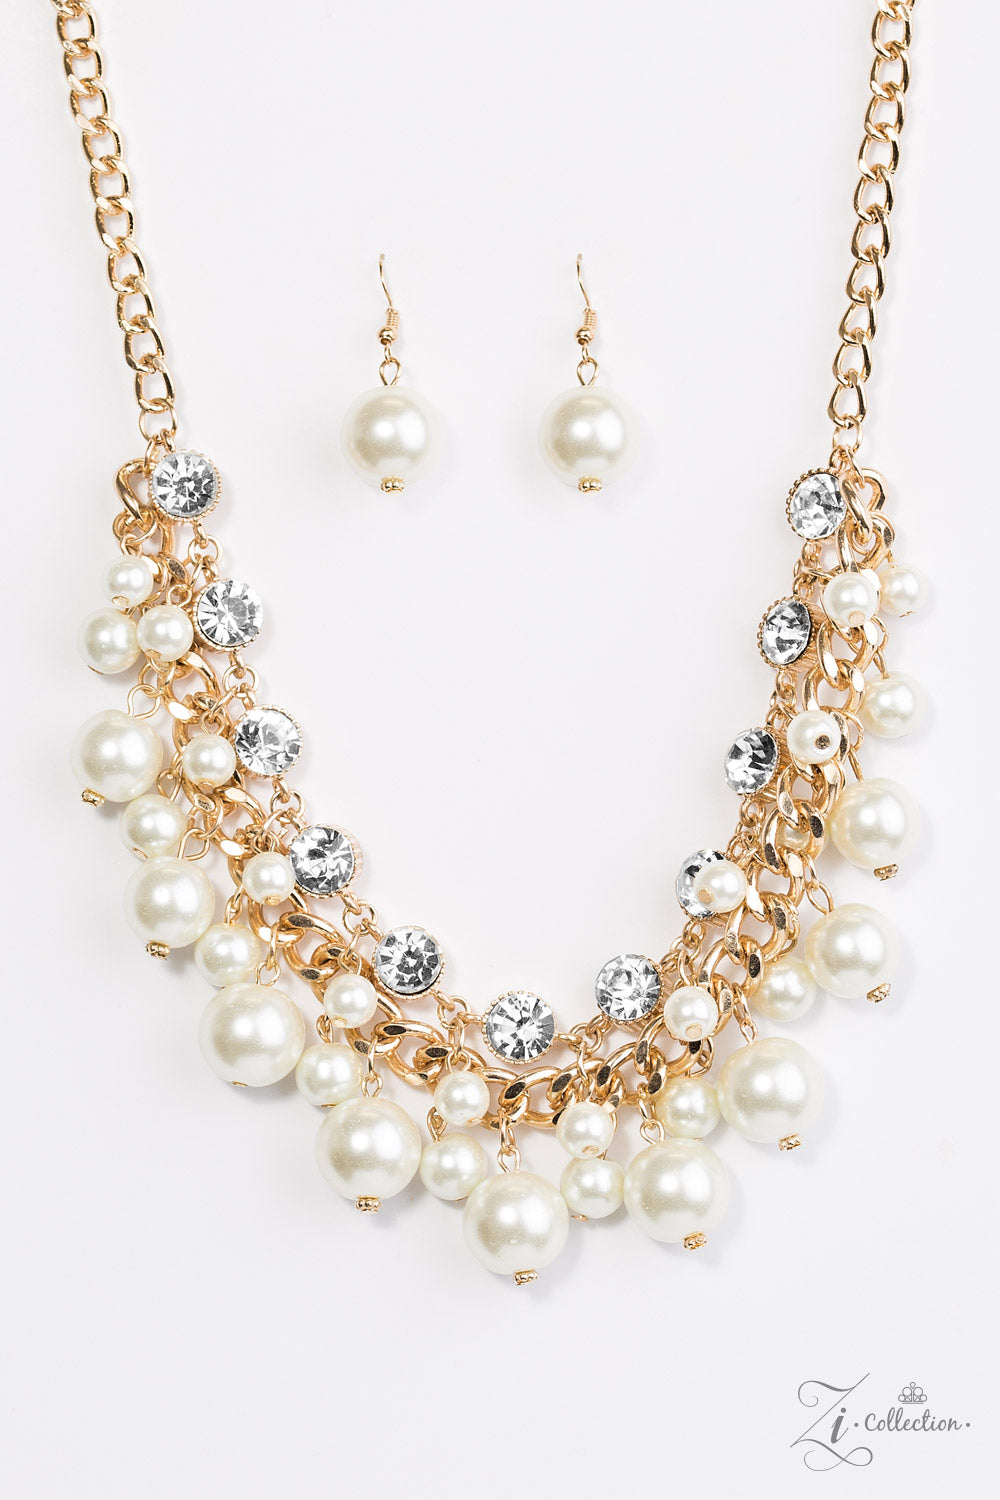 Idolize - Zi Collection necklace - Paparazzi necklace